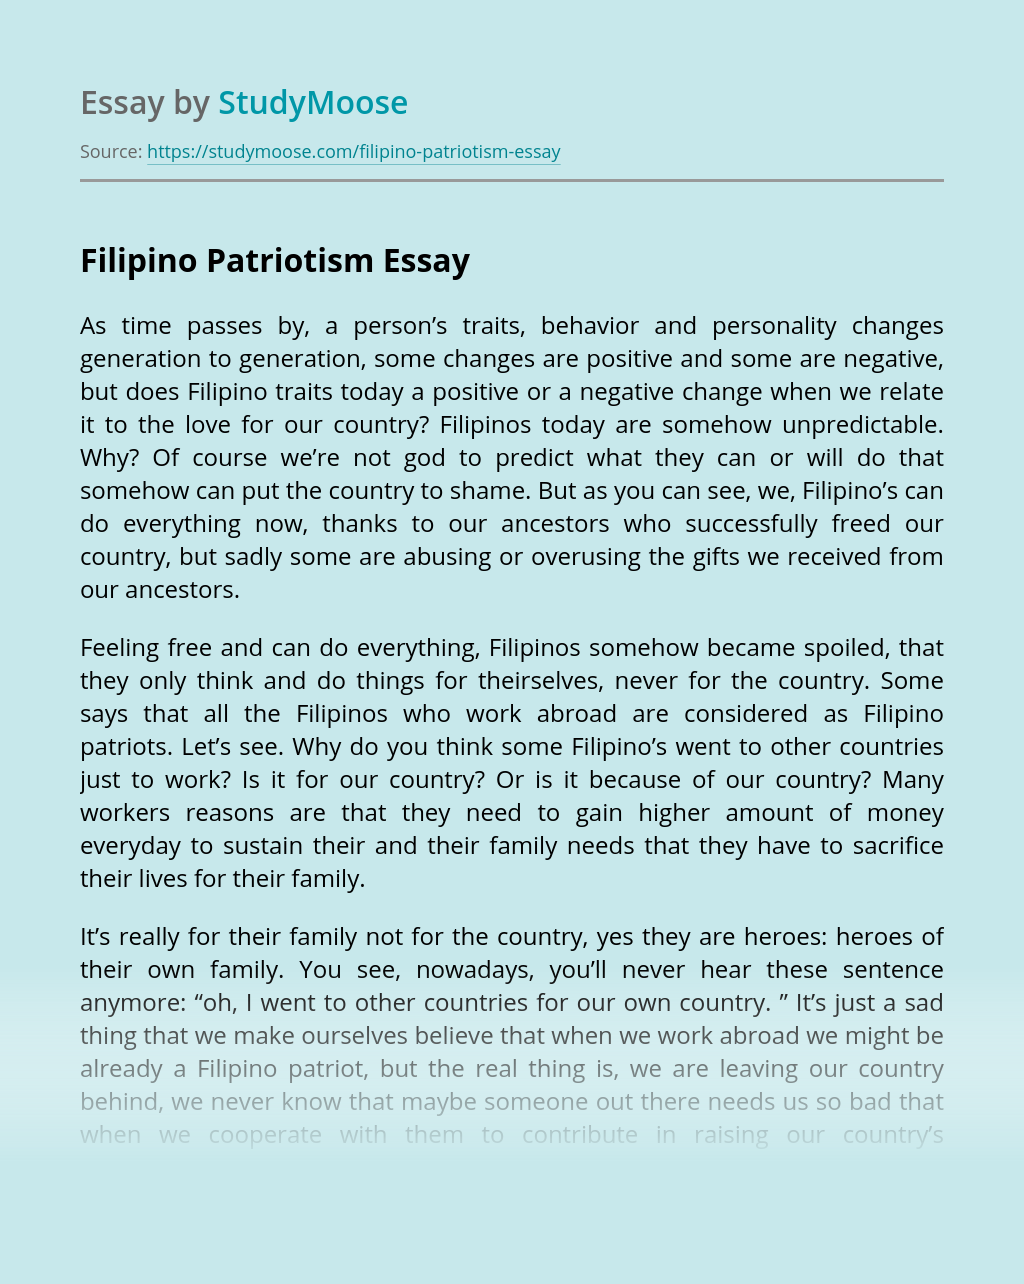 Filipino Patriotism